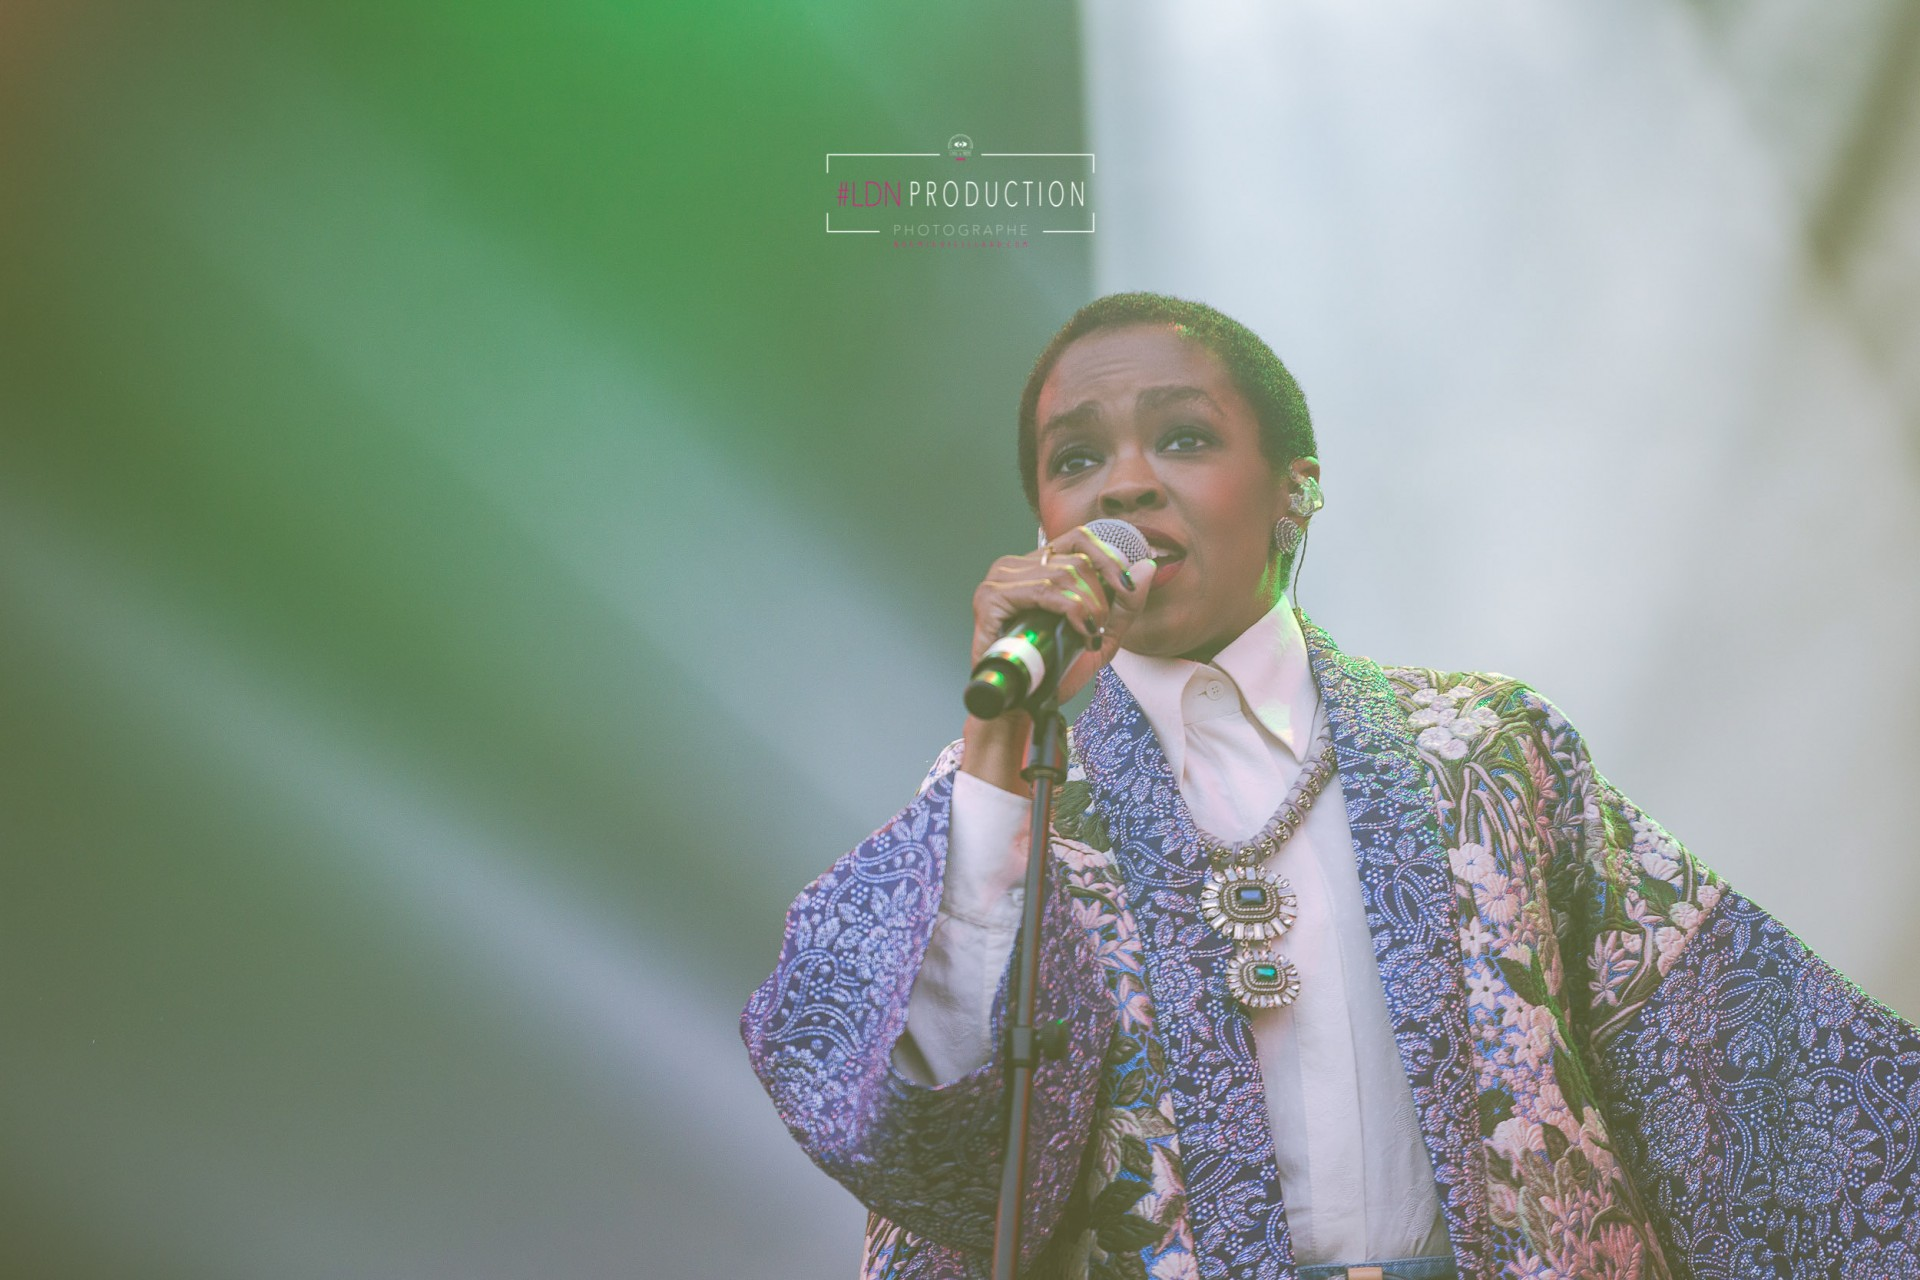 photo-ms-lauryn-hill-fugees-hip-hop-usa-soul-festival-papillons-de-nuit-normandie-noemie-vieillard-34